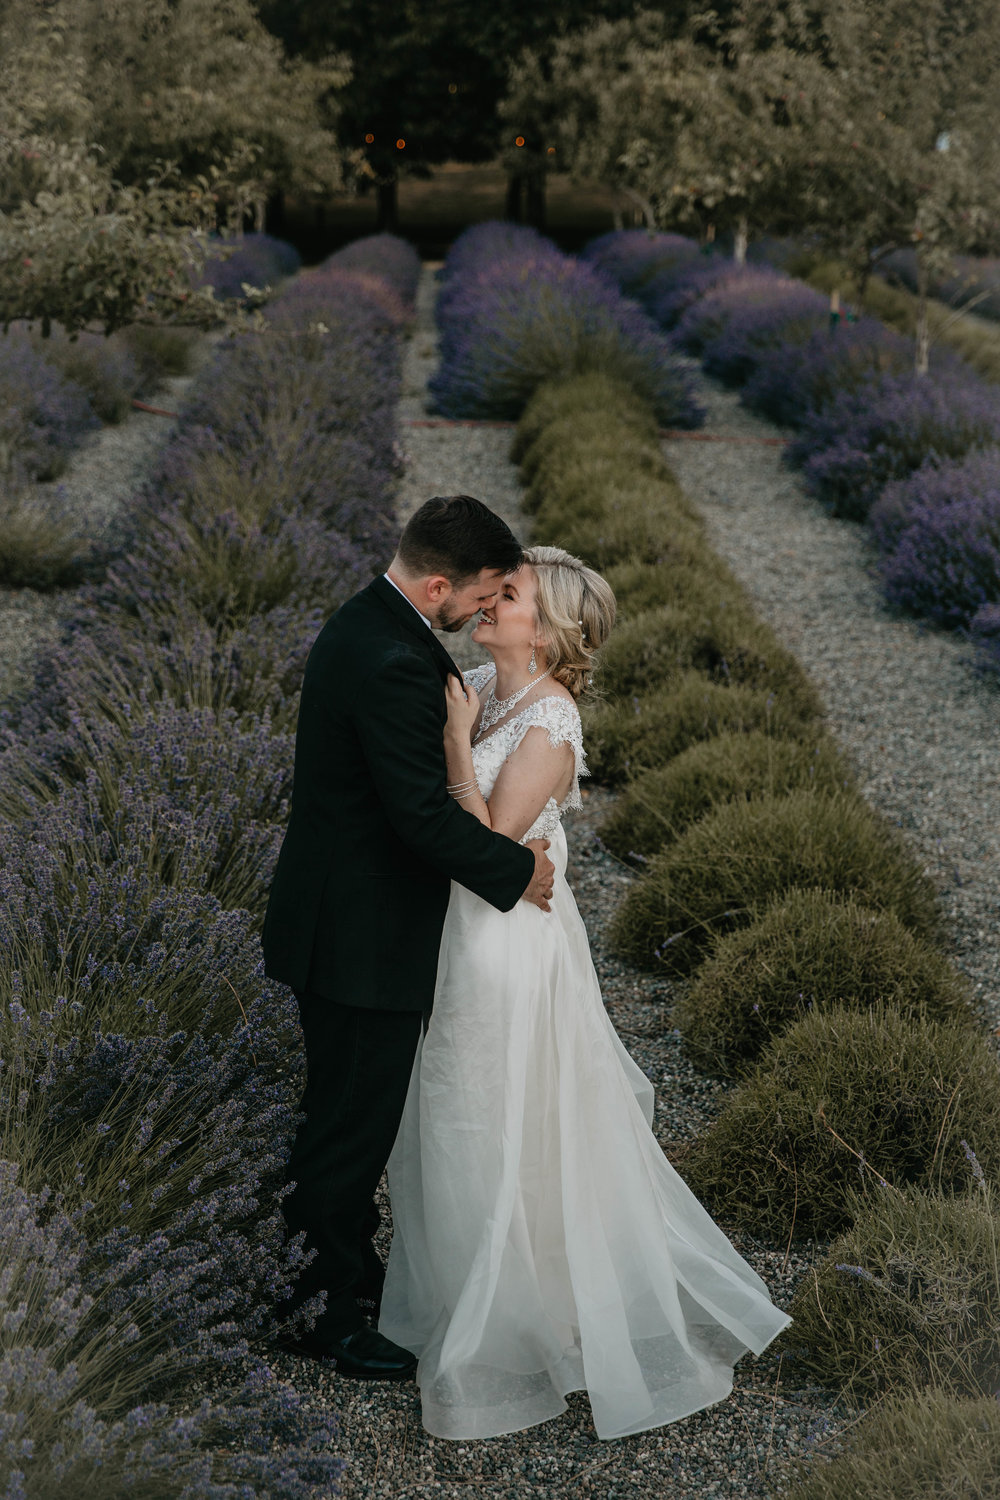 nicole-daacke-photography-kingston-house-bainbride-washington-wedding-photography-summer-wedding-lavendar-field-pacific-northwest-wedding-glam-forest-elopement-photographer-74.jpg